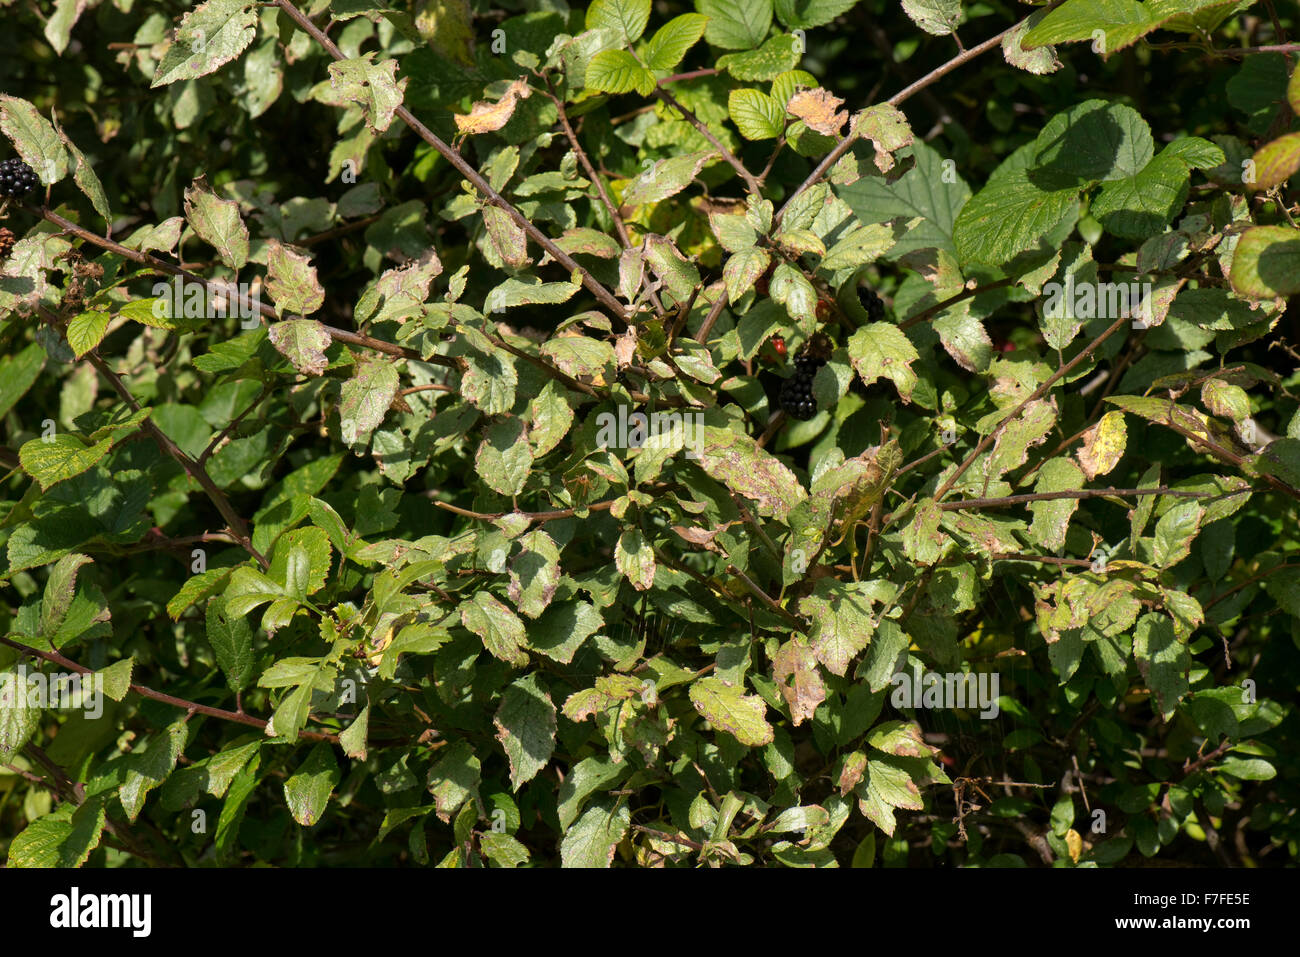 Silver leaf disease, Chondrostereum purpureum, on wild plum trees in a hedgerow, Berkshire, September - Stock Image